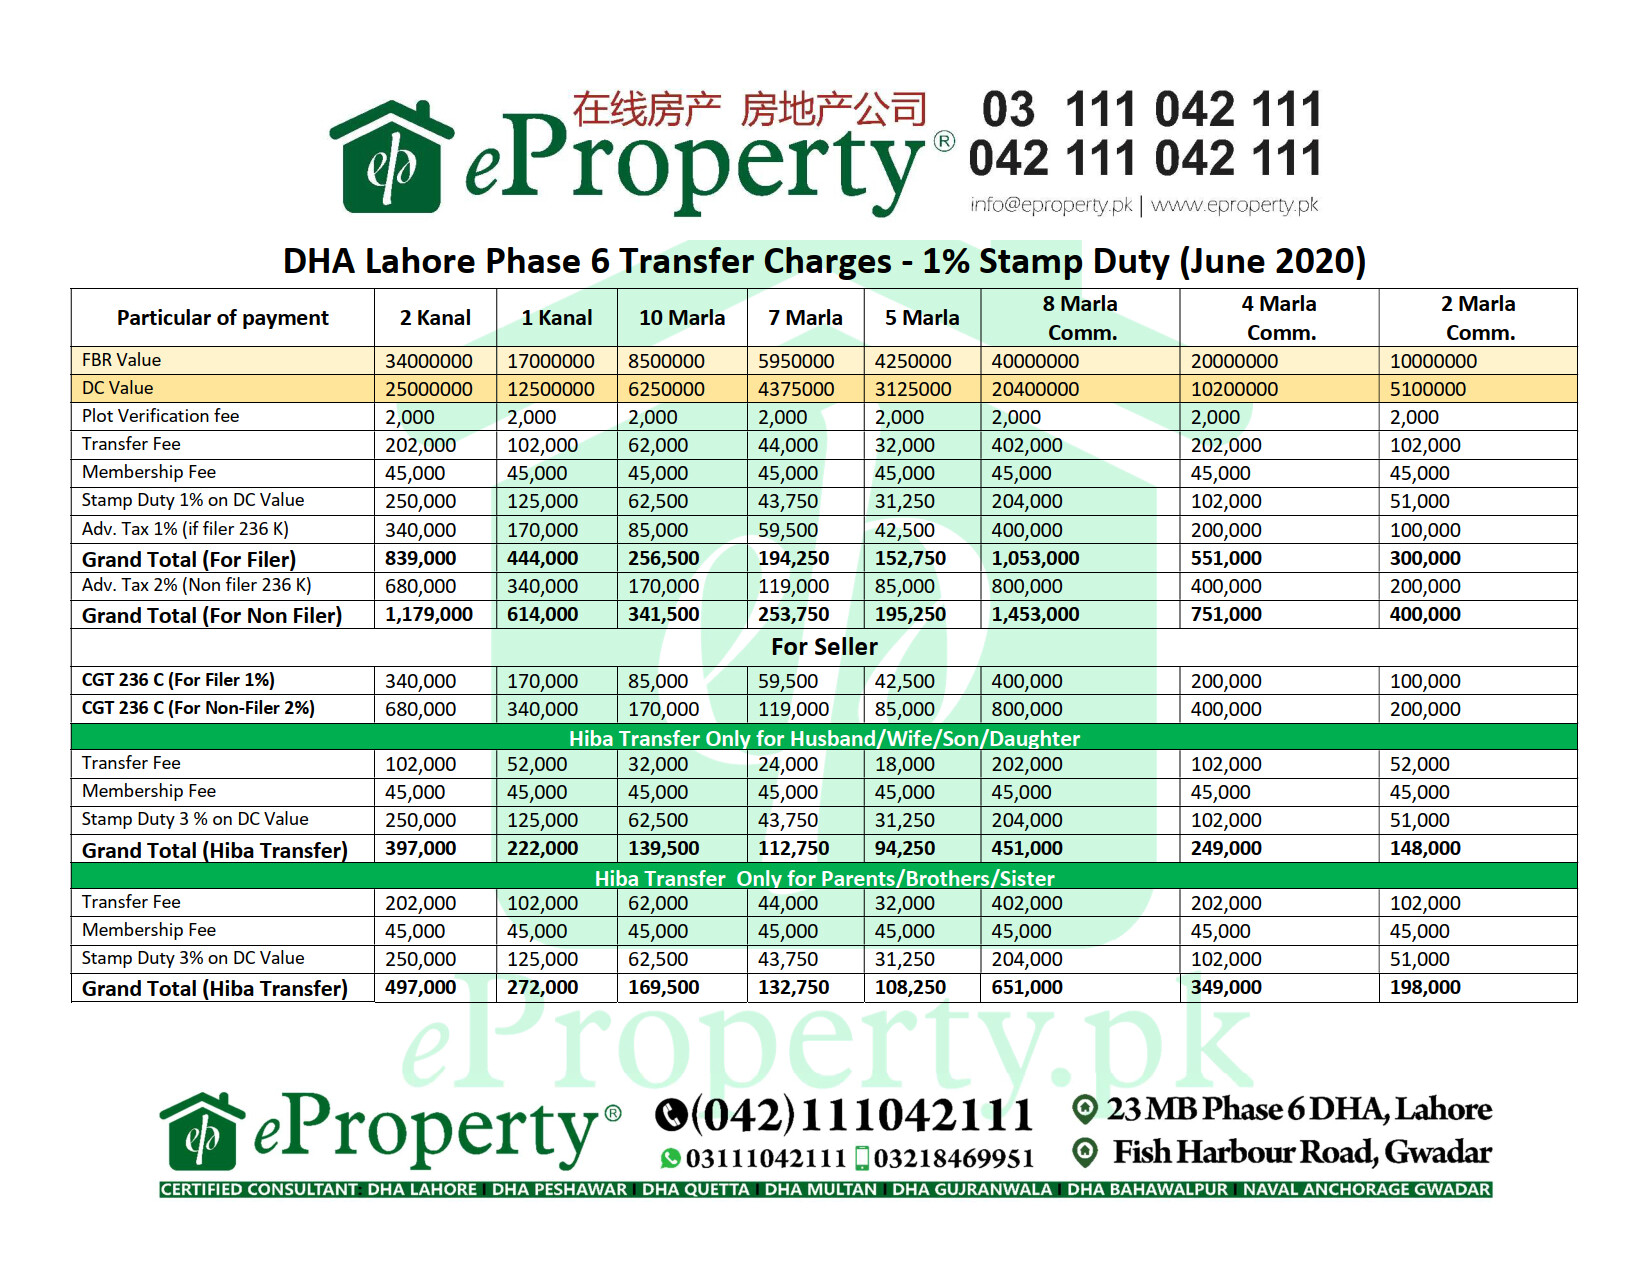 DHA Lahore Phase 6 Transfer Charges - 1% Stamp Duty (June 2020)